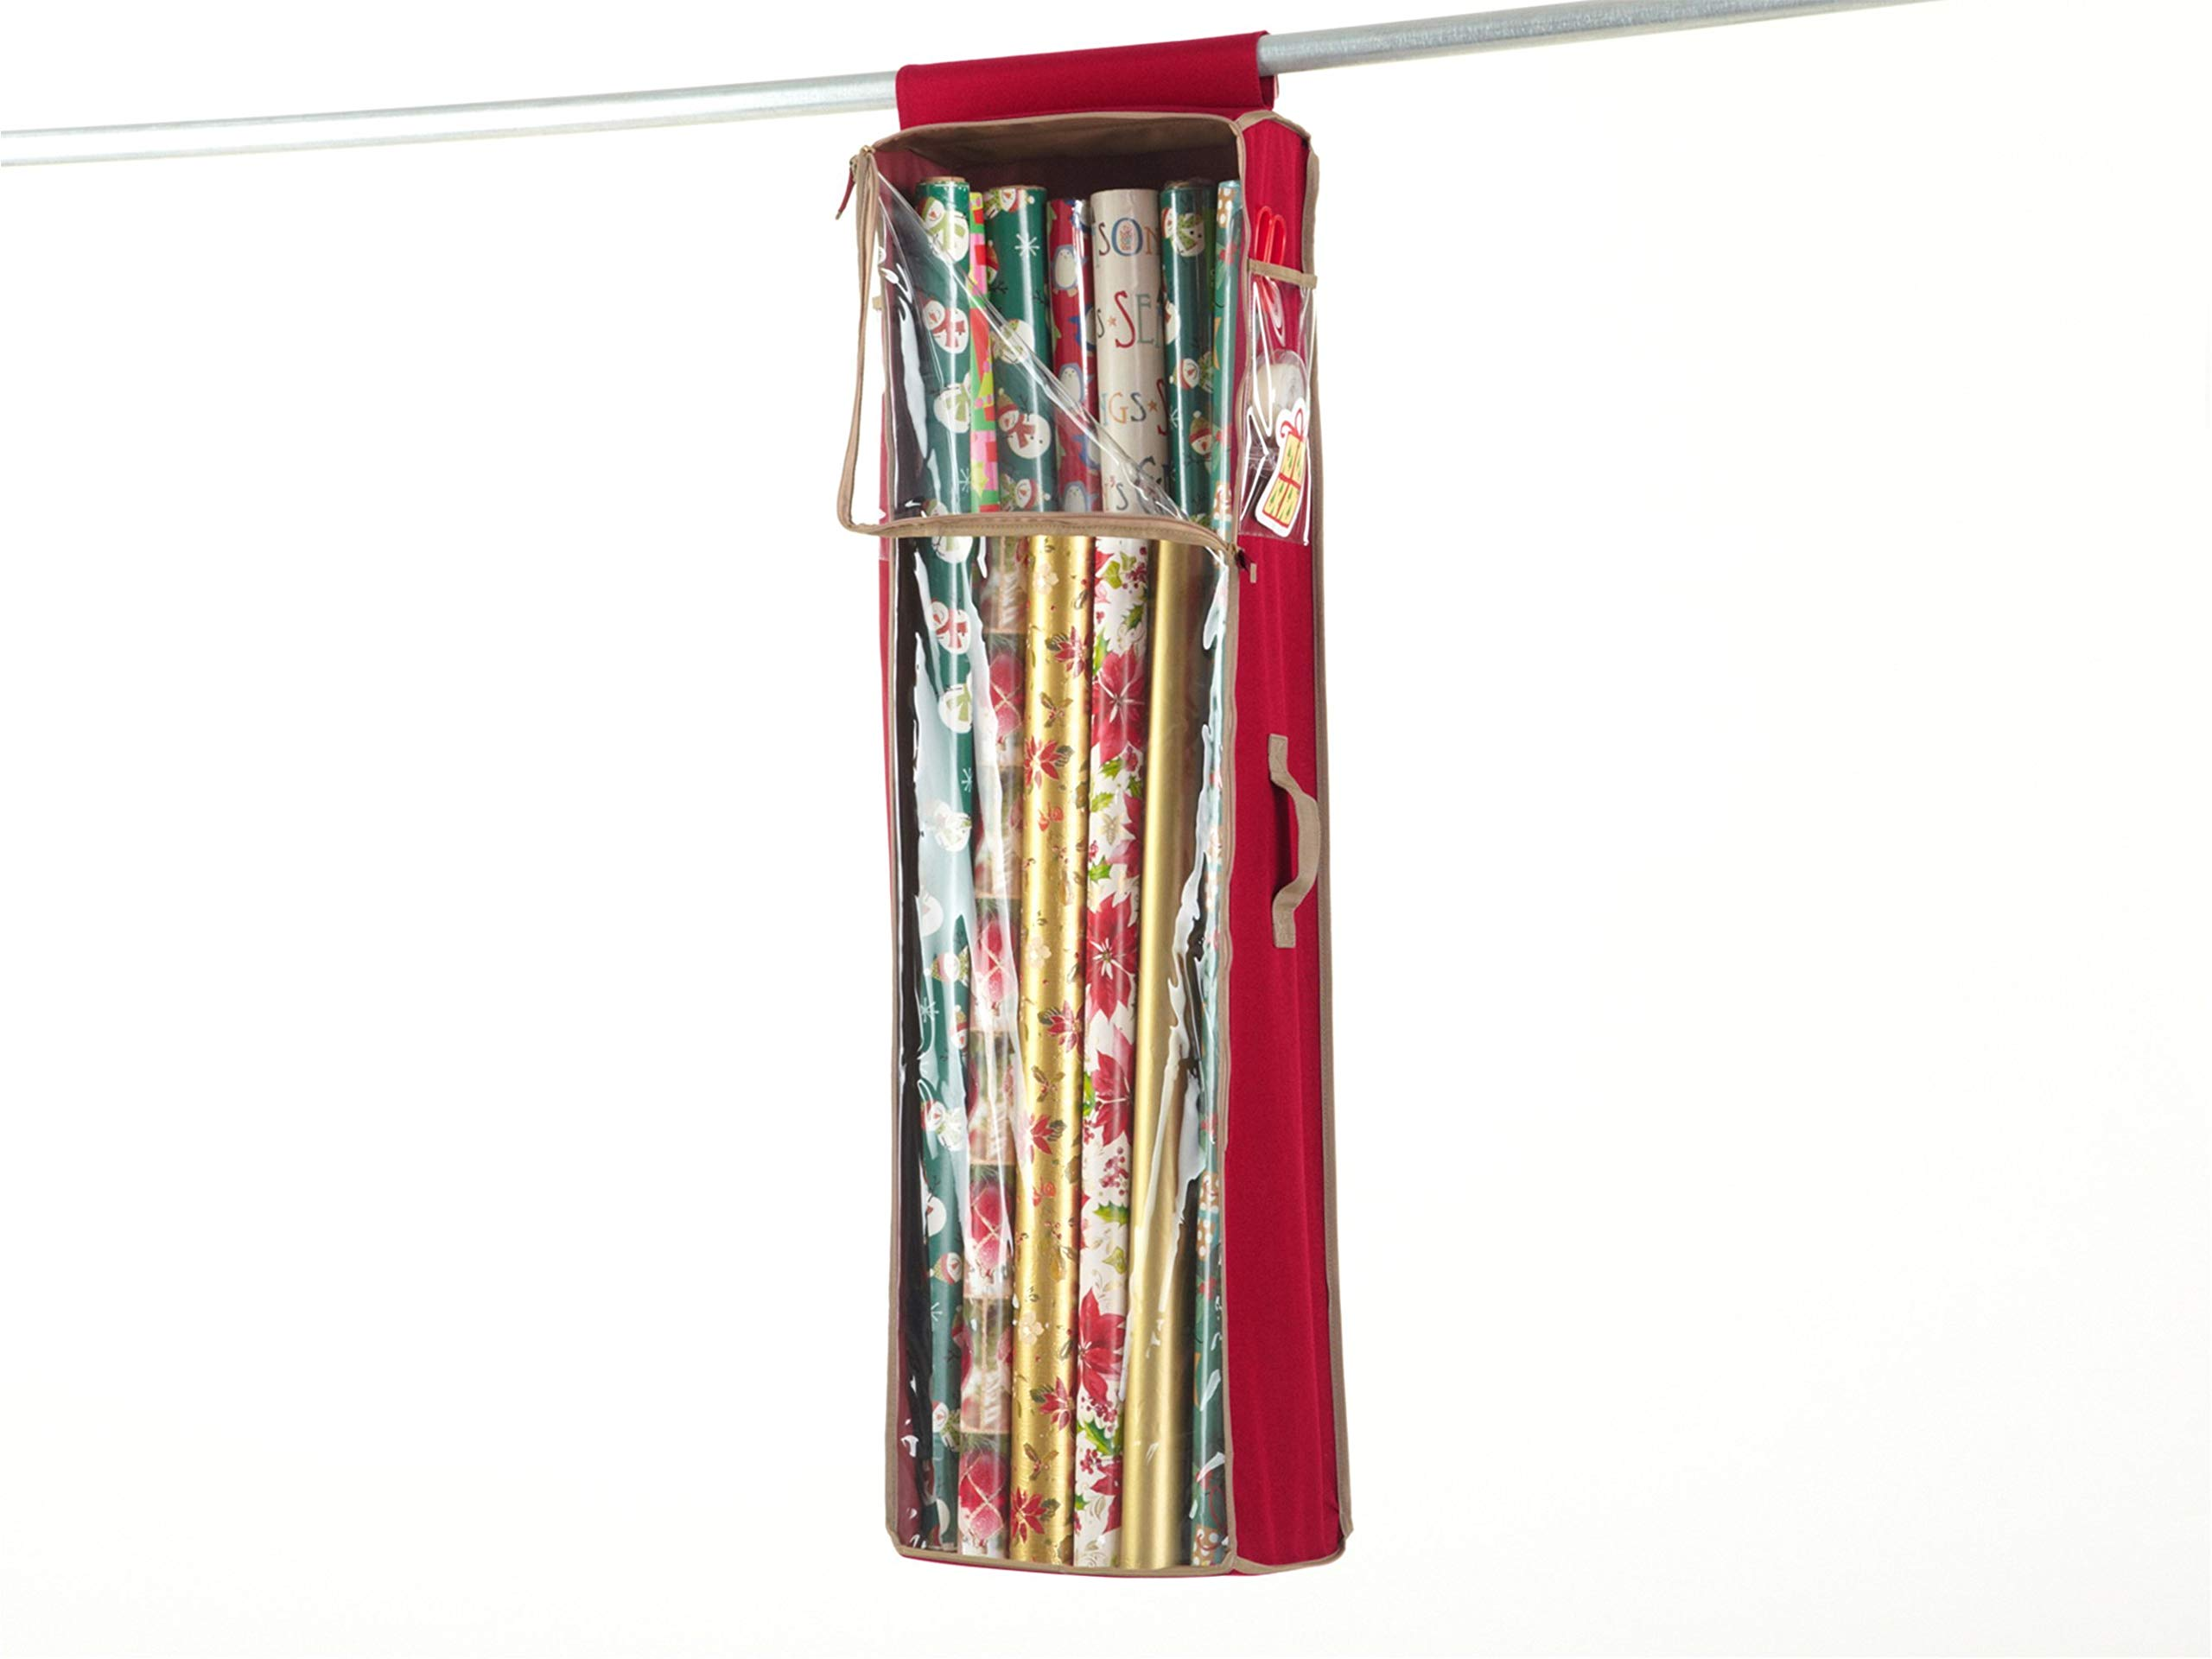 CoverMates – Hanging Gift Wrap Storage Bag – Holds up to 20 Rolls + Accessories – 3 Year Warranty- Red